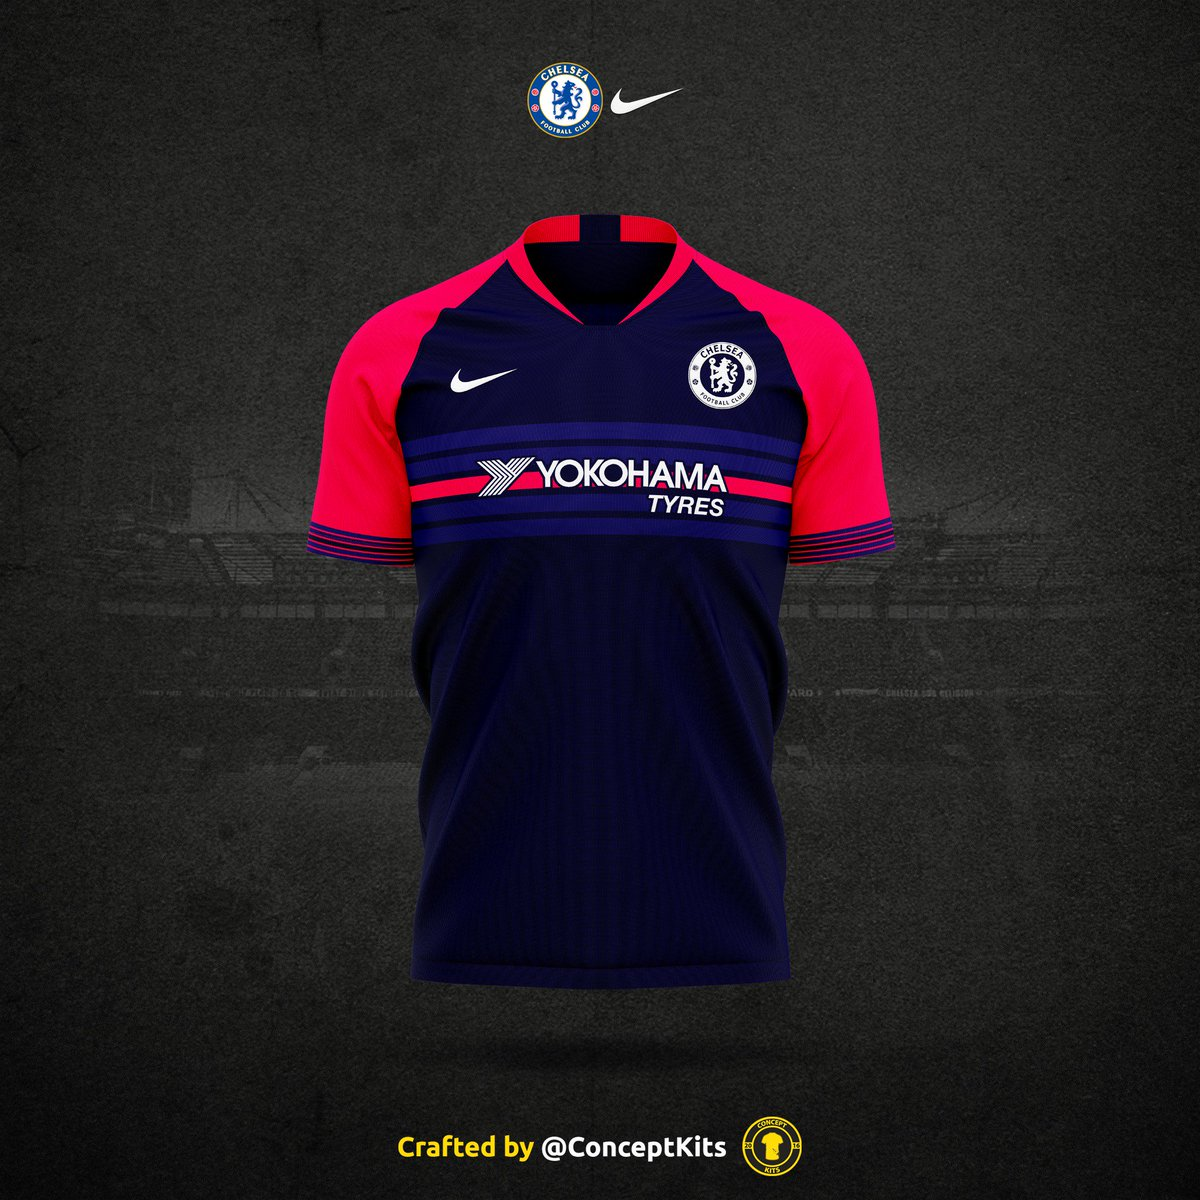 detailed look ef1f5 a7e4c Chelsea Football Club third kit concept for the 2019/20 ...